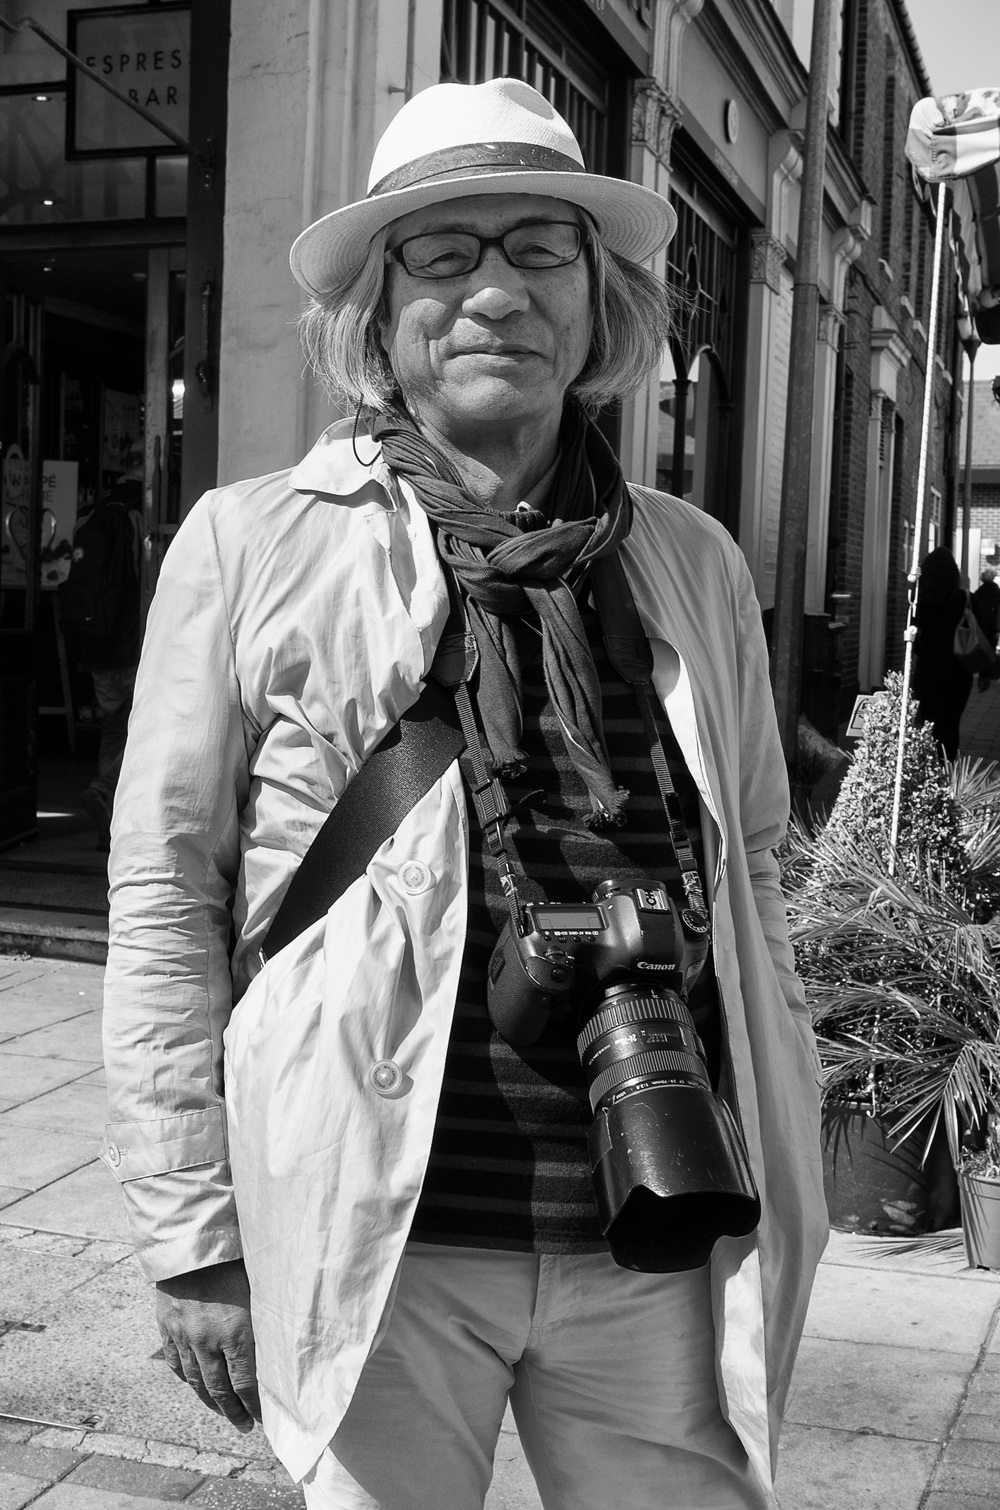 Representative from Japanese TV programme in West London: f7.1 @ 1/125s, ISO 100